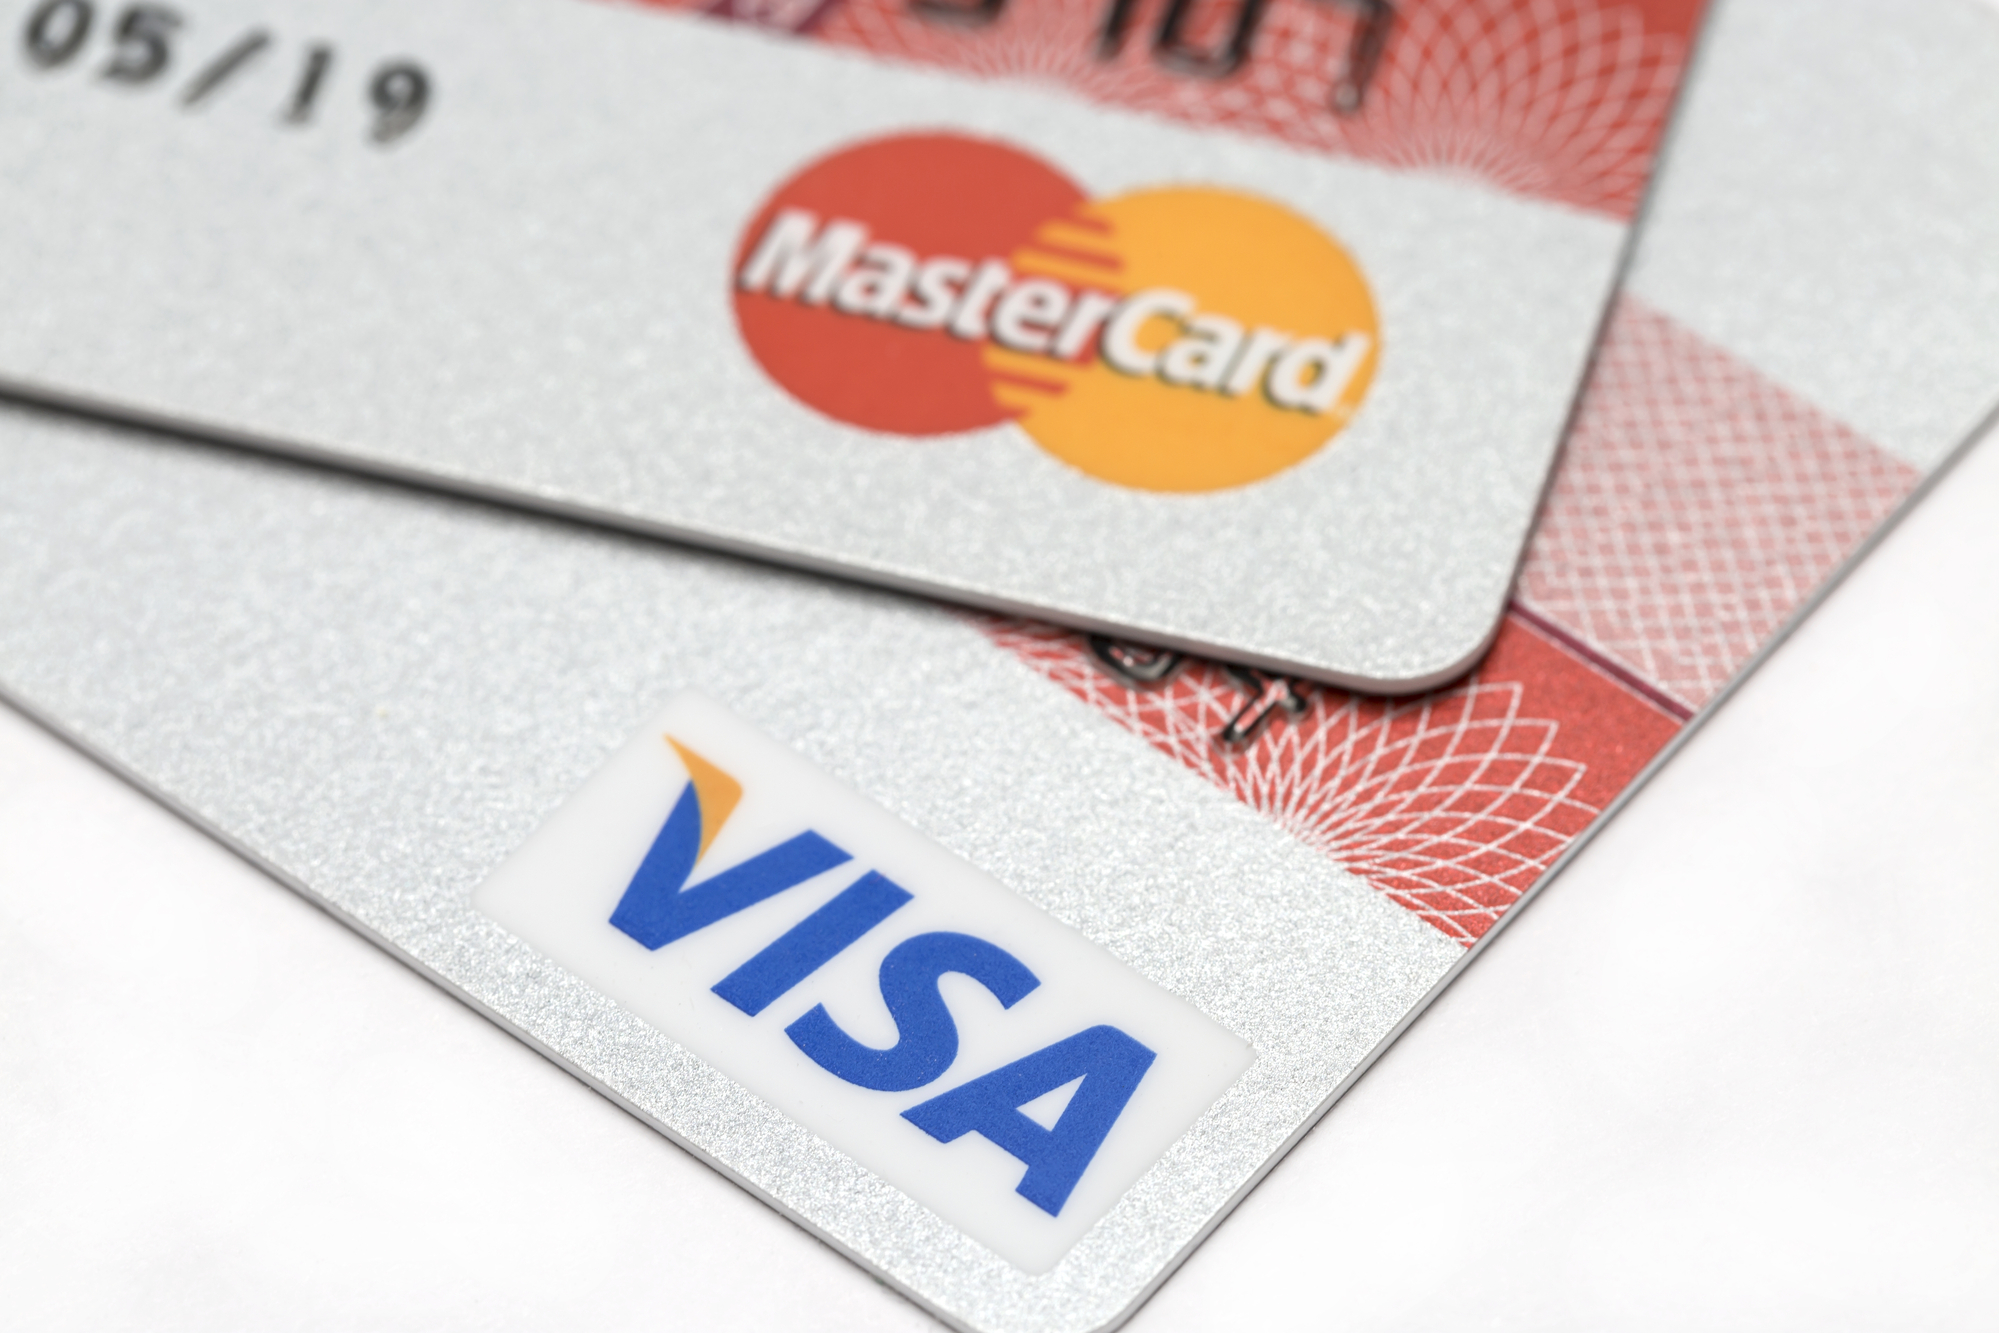 credit card reconciliation Schenectady NY